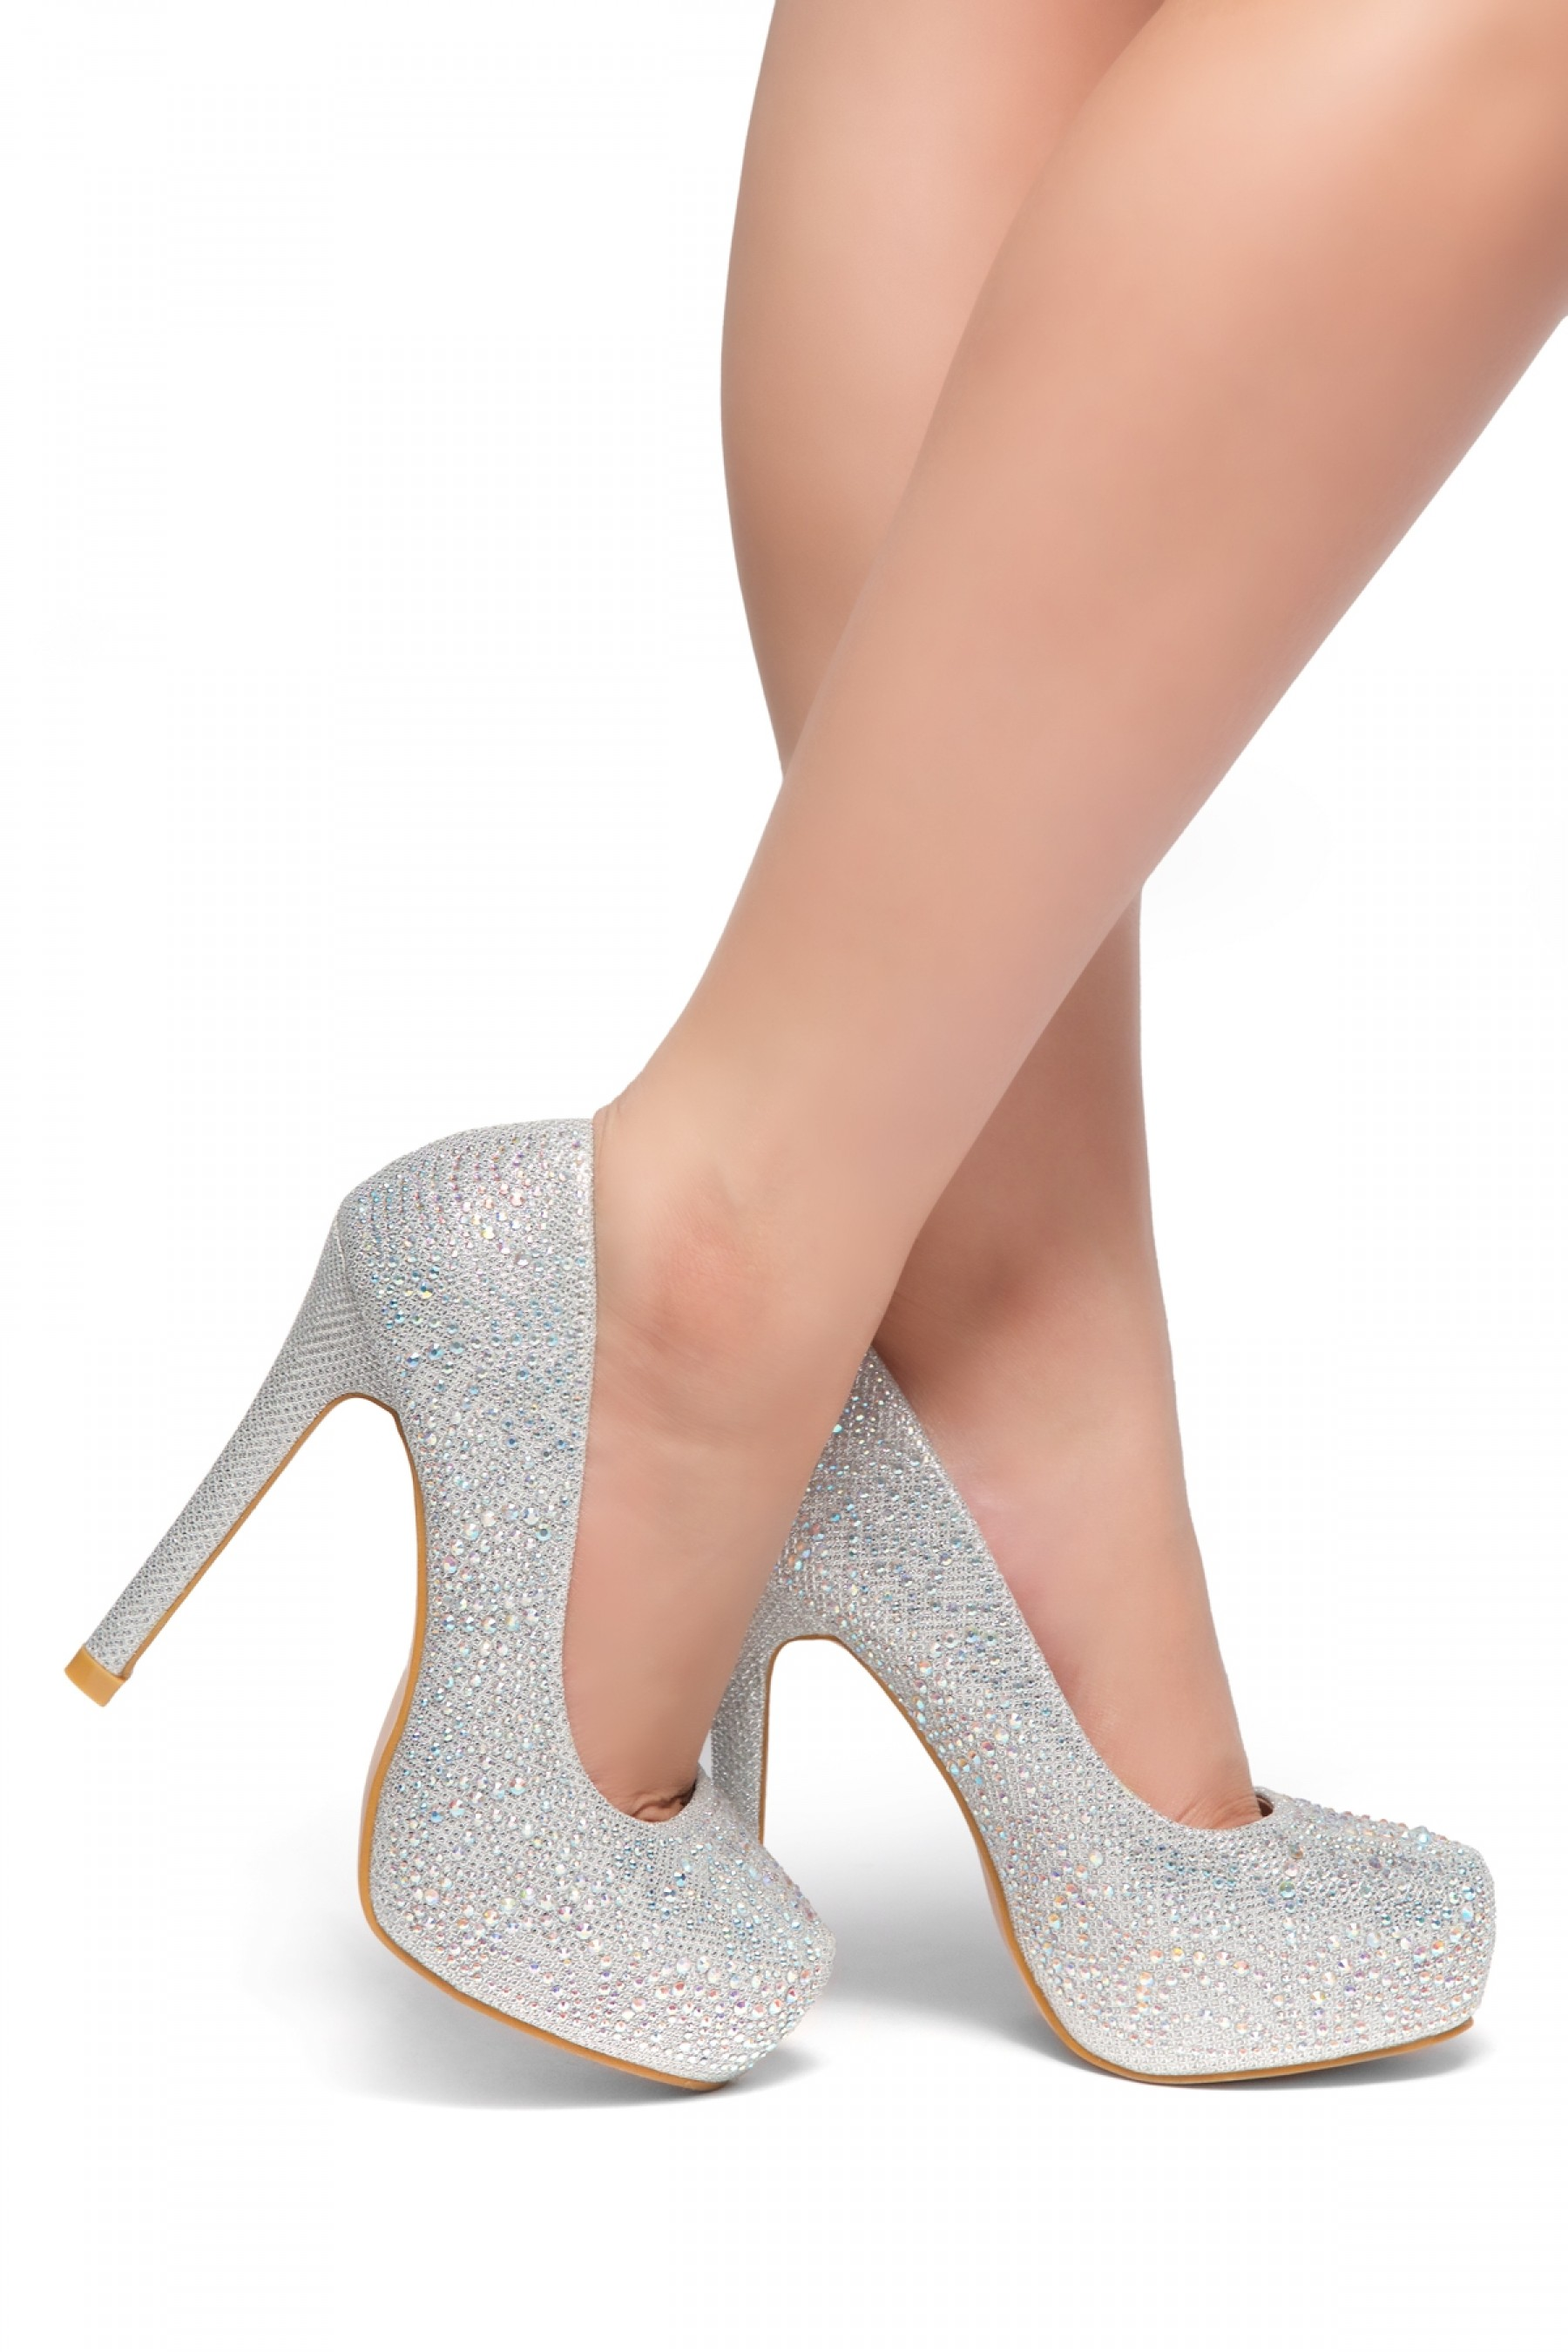 SL-Nandita--Stiletto heel Platform, Jeweled embellishments (Silver)